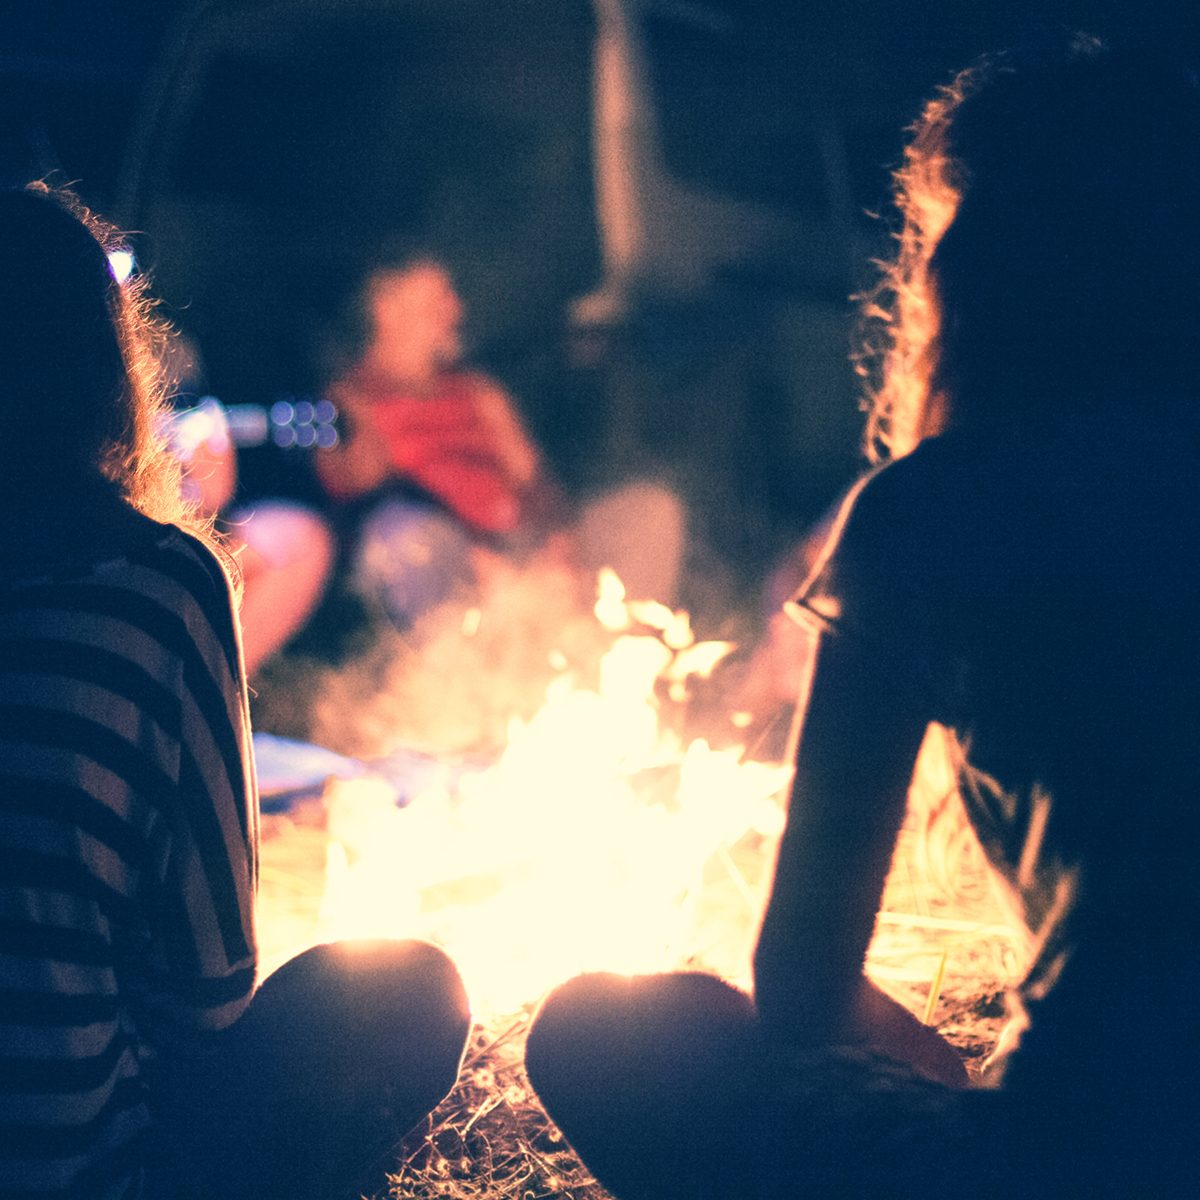 People sit at night round a bright bonfire